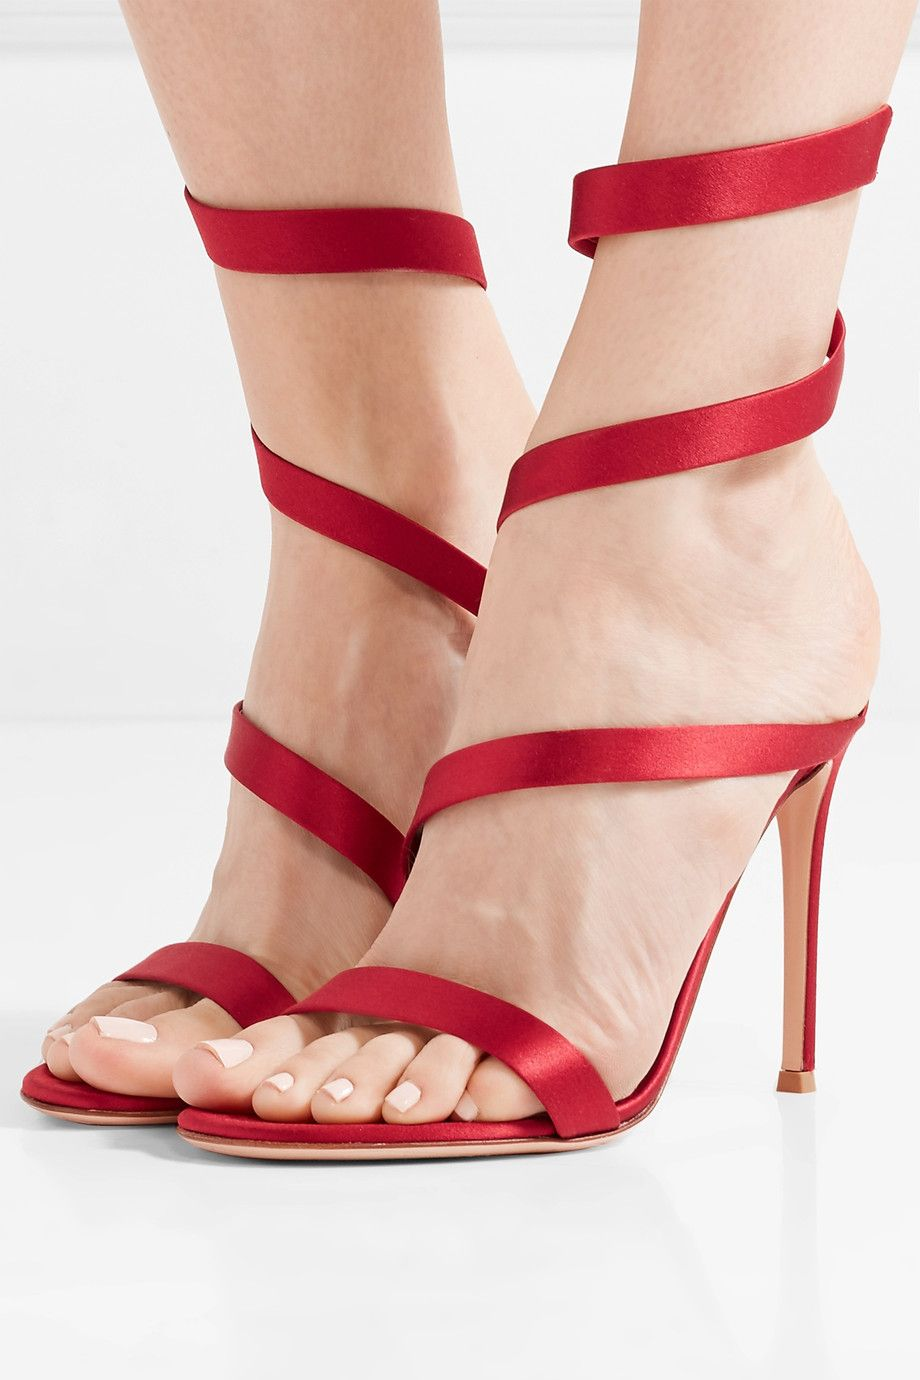 Gianvito Rossi Opéra 100 Sandales - Rouge o1lAc